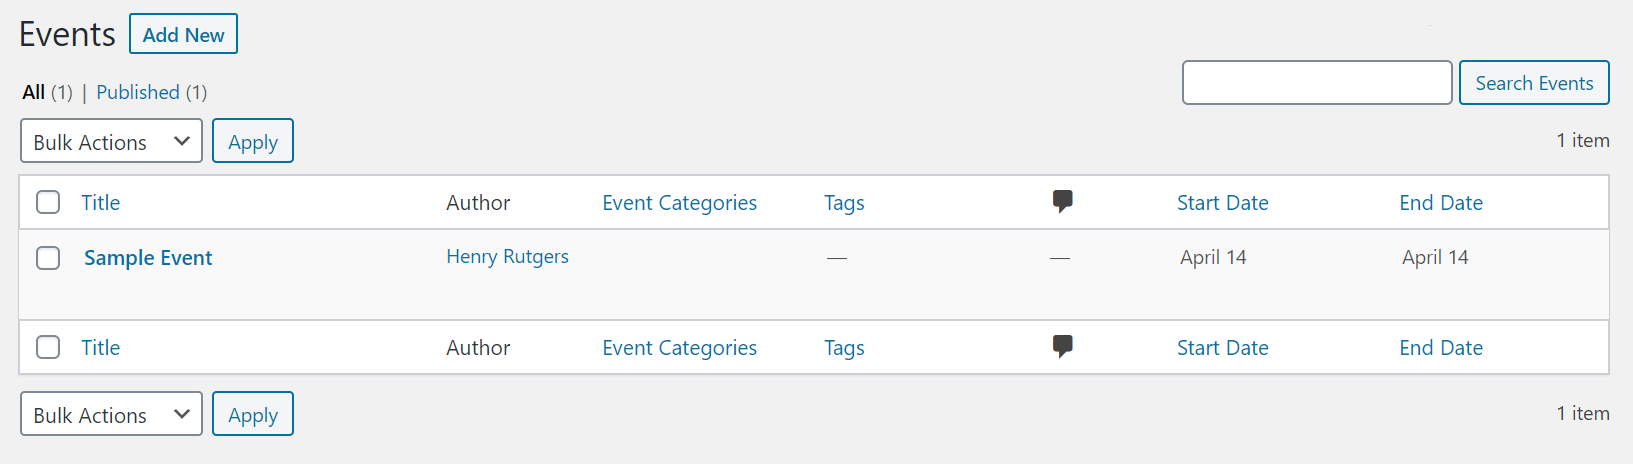 backend view of all events